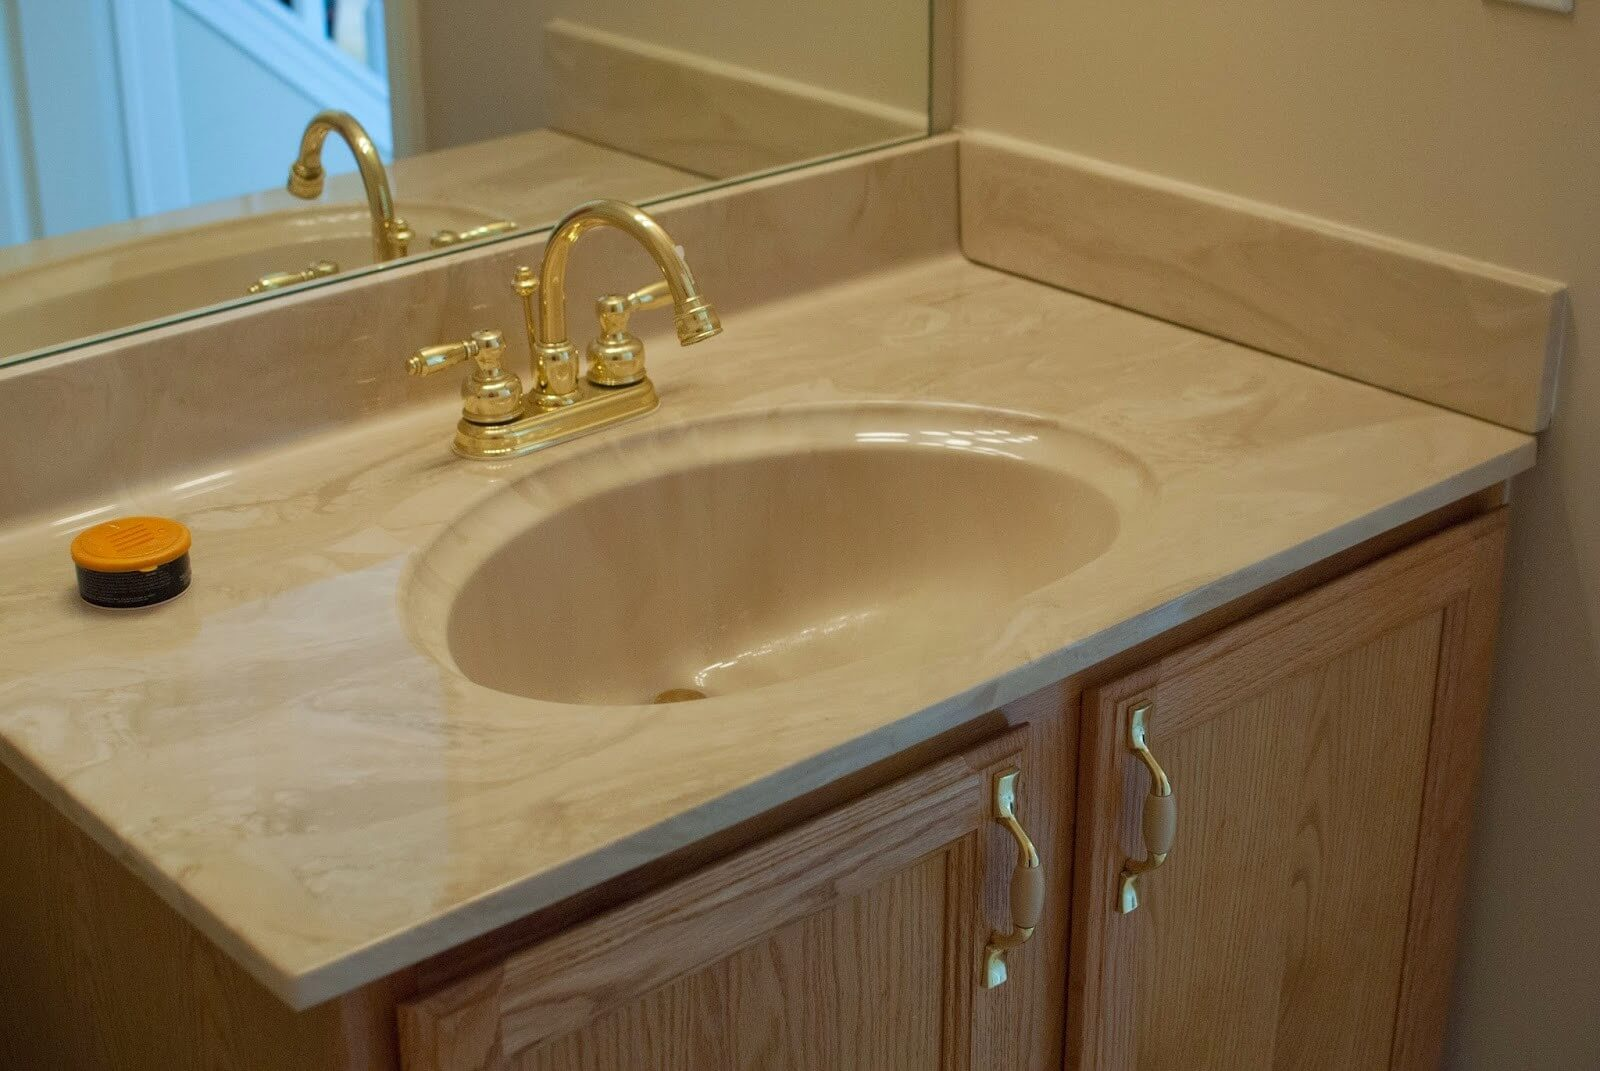 Vanity Top and Sinks Recoating-San Diego Bathtub Reglazing & Tub Resurfacing Pros